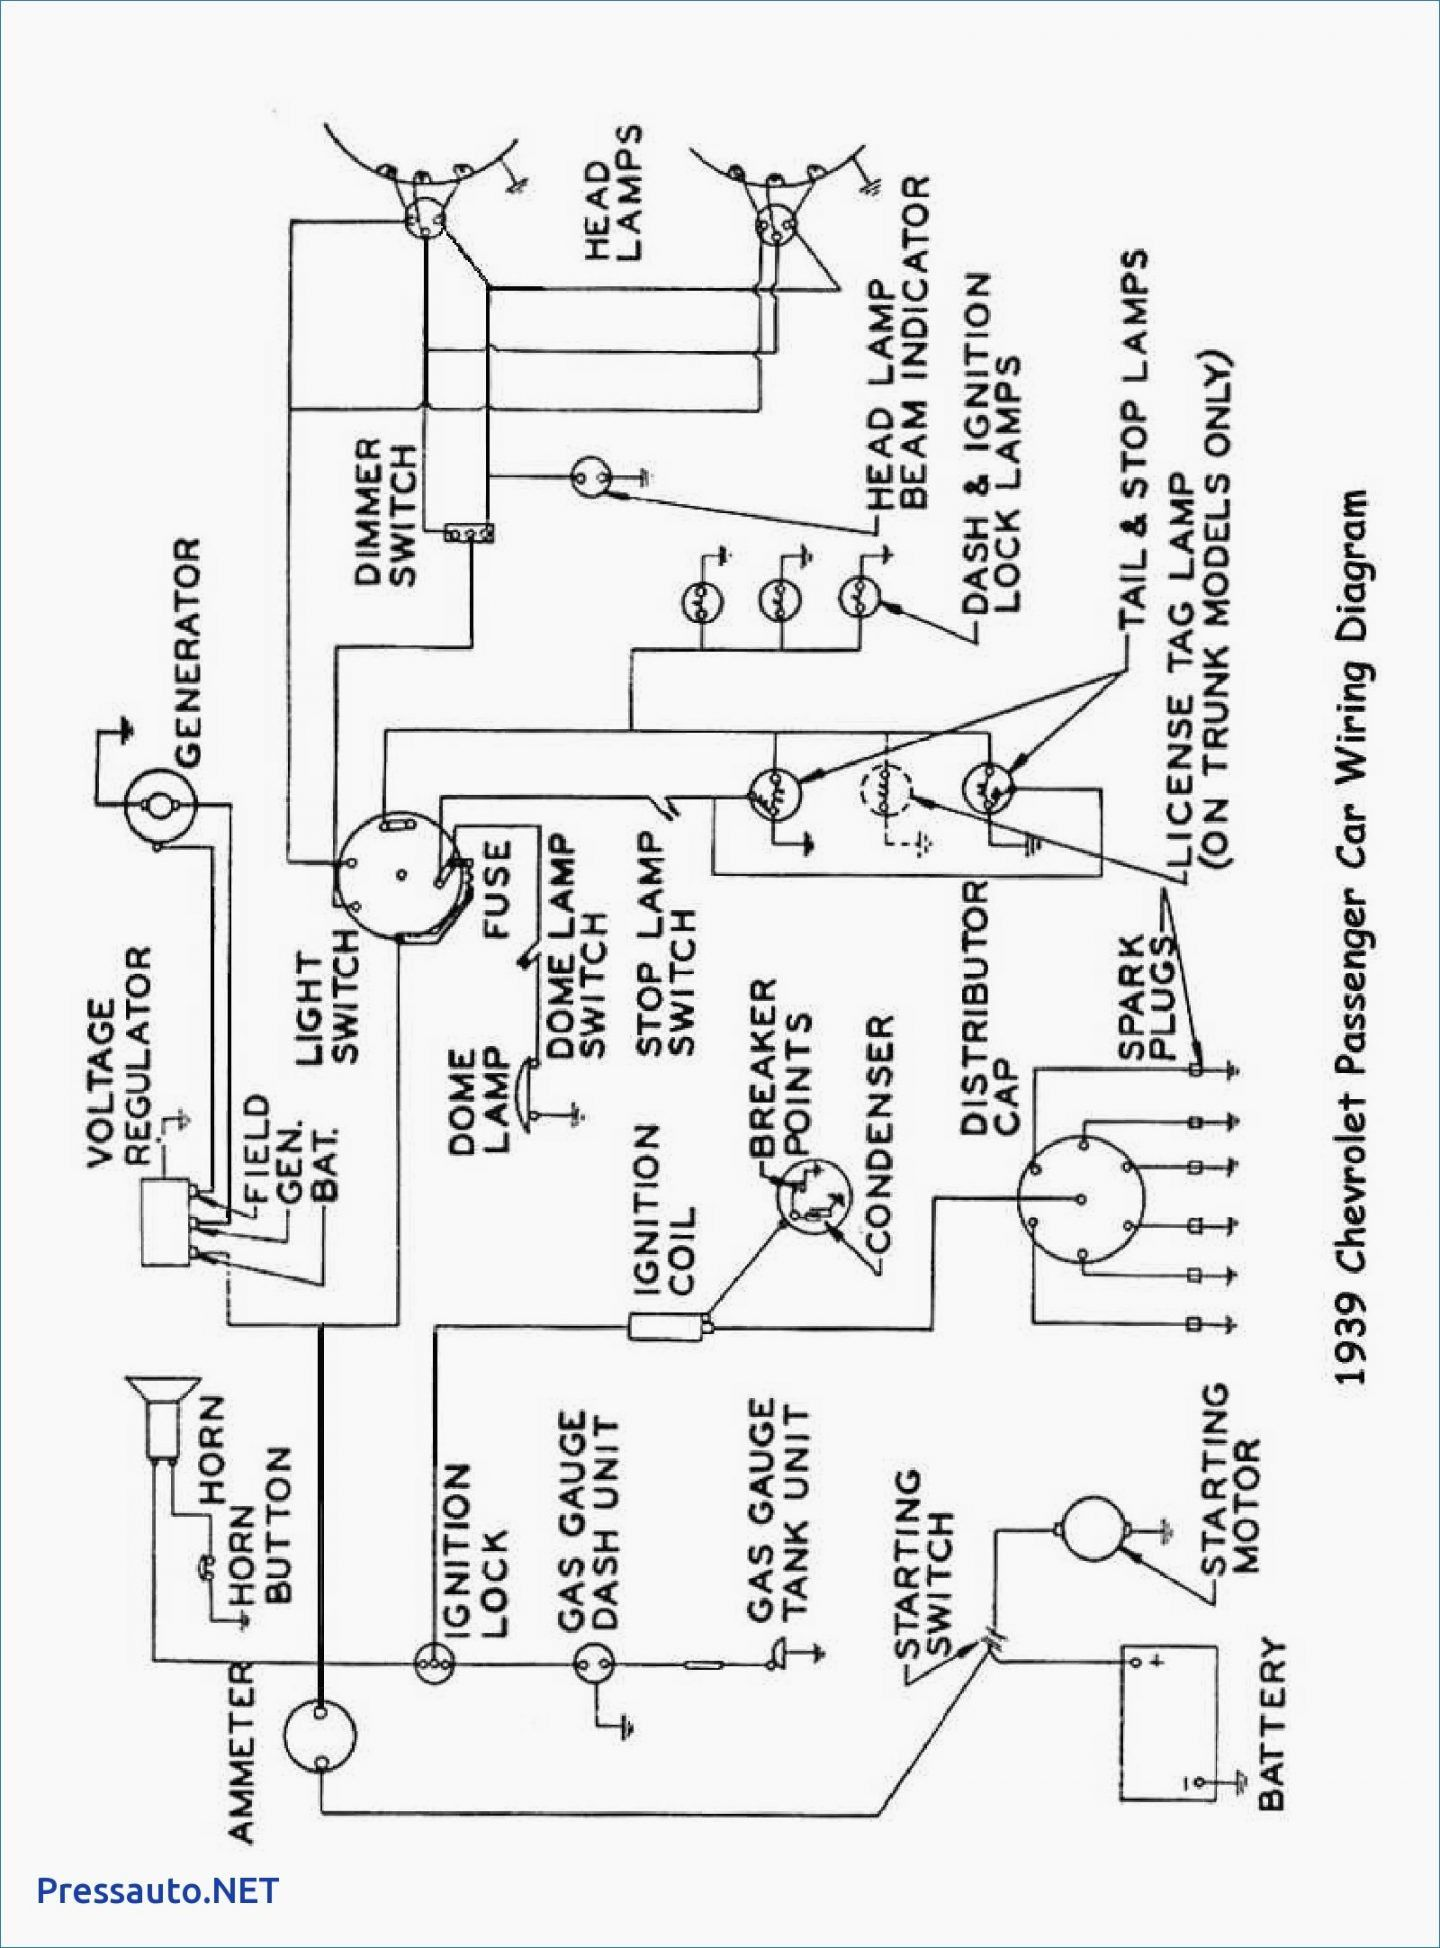 medium resolution of wiring diagram welding machine inspirationa best of pdf circuitwiring diagram welding machine inspirationa best of pdf